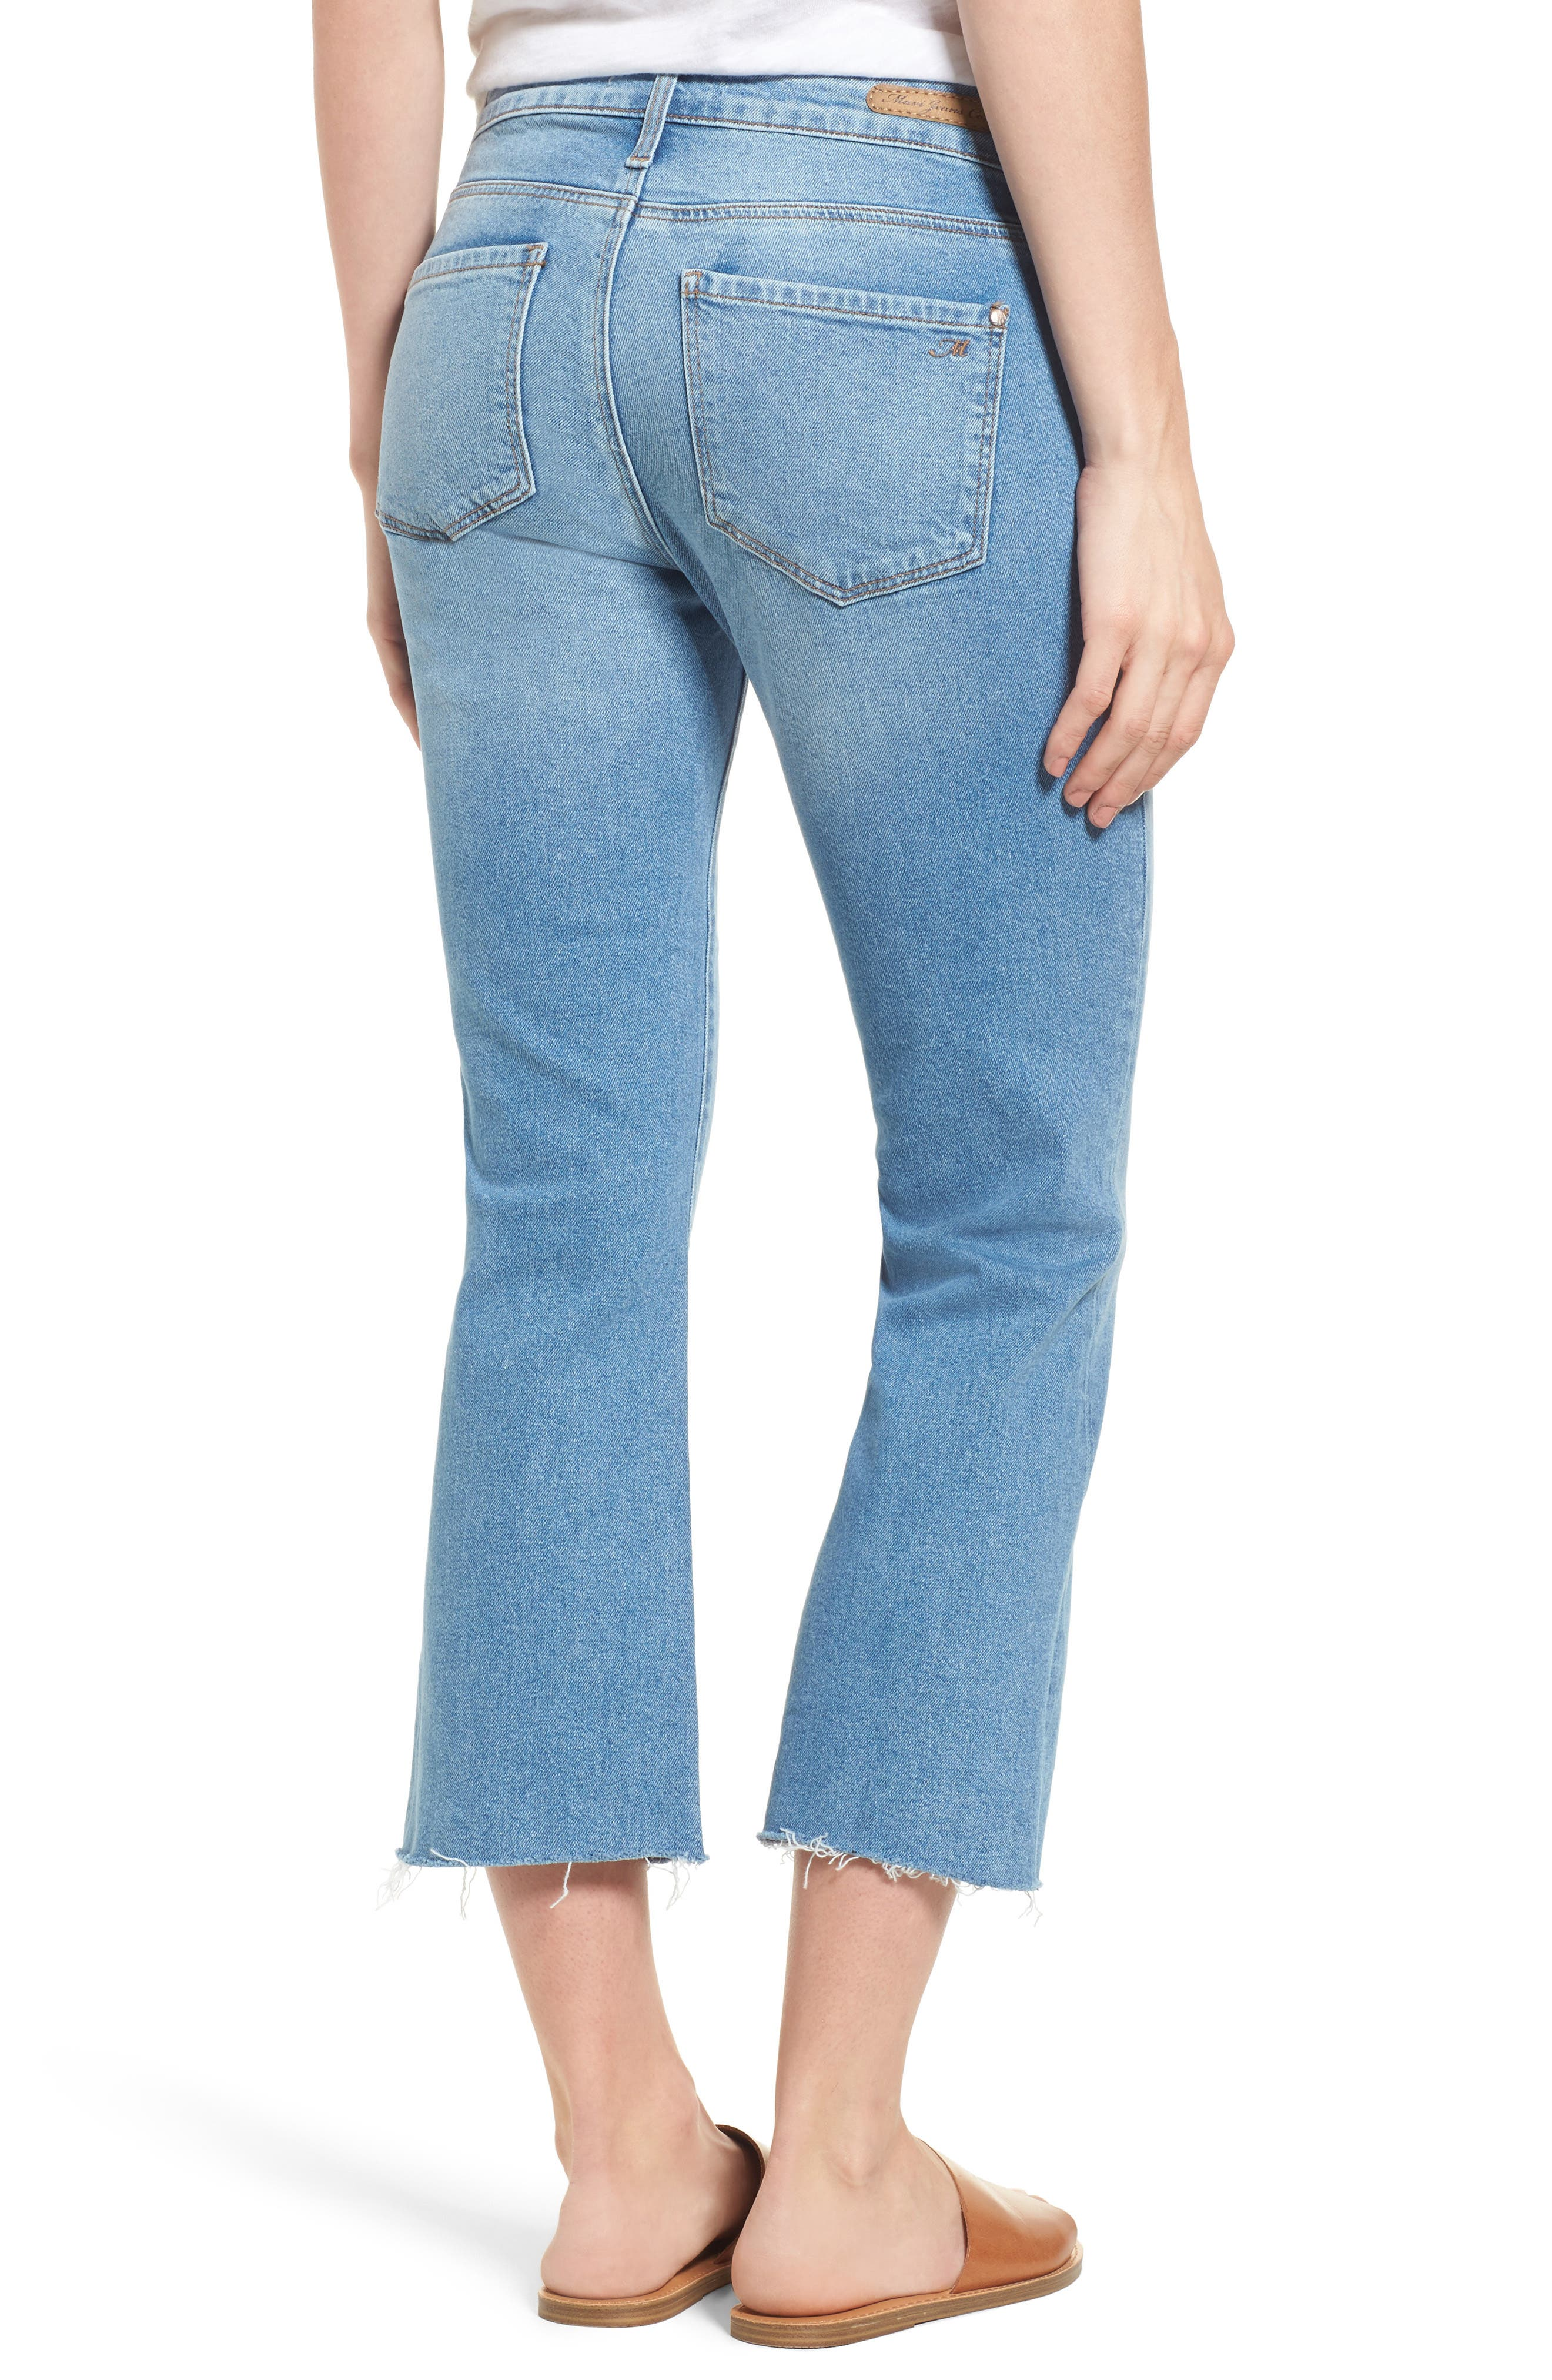 Anika Stretch Crop Jeans,                             Alternate thumbnail 2, color,                             420